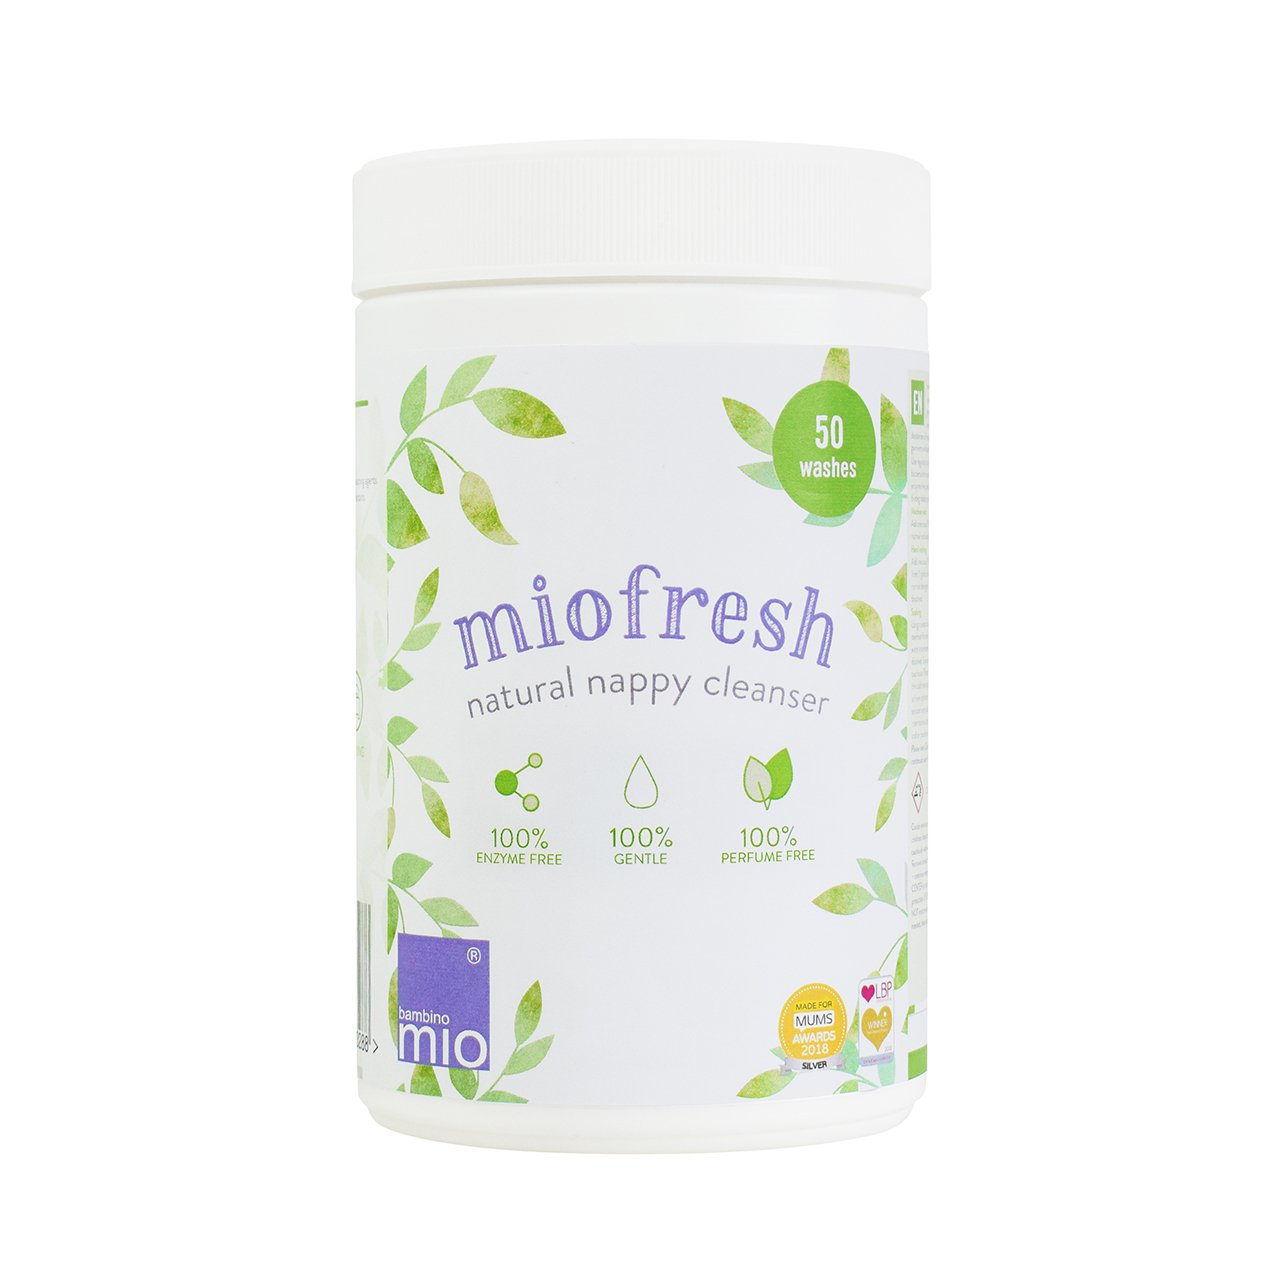 Bambino Mio Miofresh Laundry Cleanser - Happy Baby